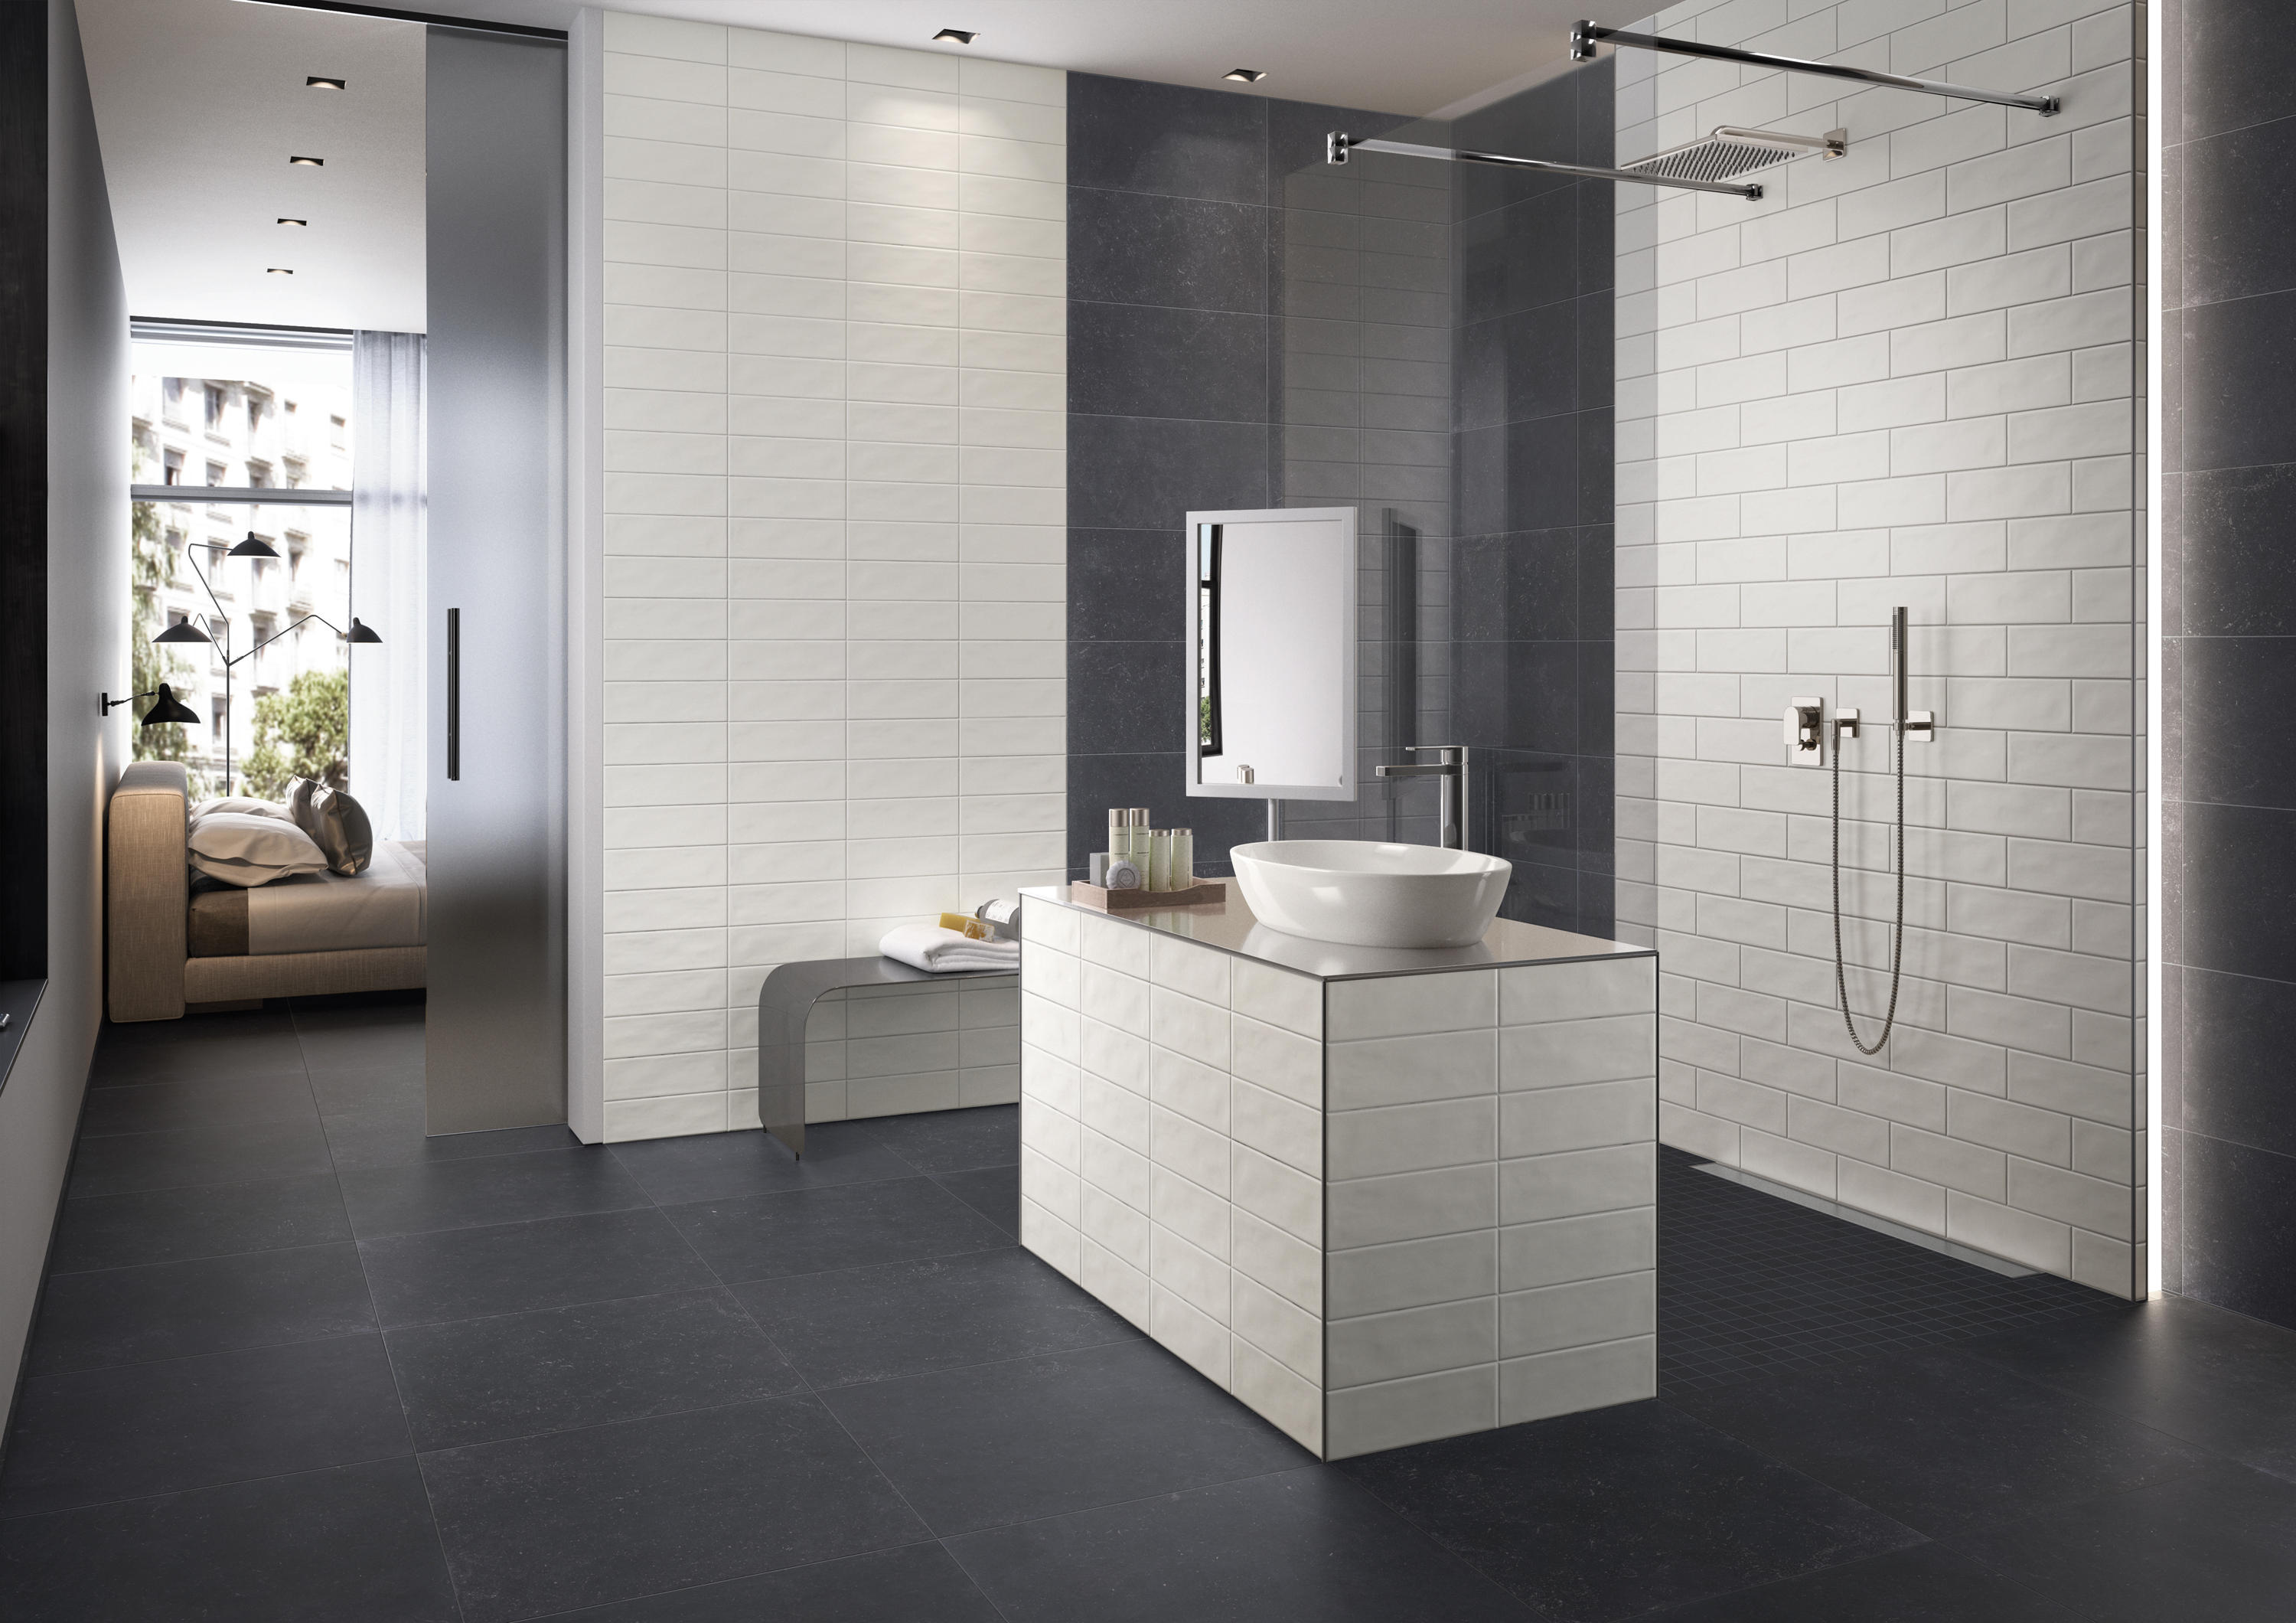 Urbantone li20 ceramic tiles from villeroy boch for Bodenfliesen badezimmer